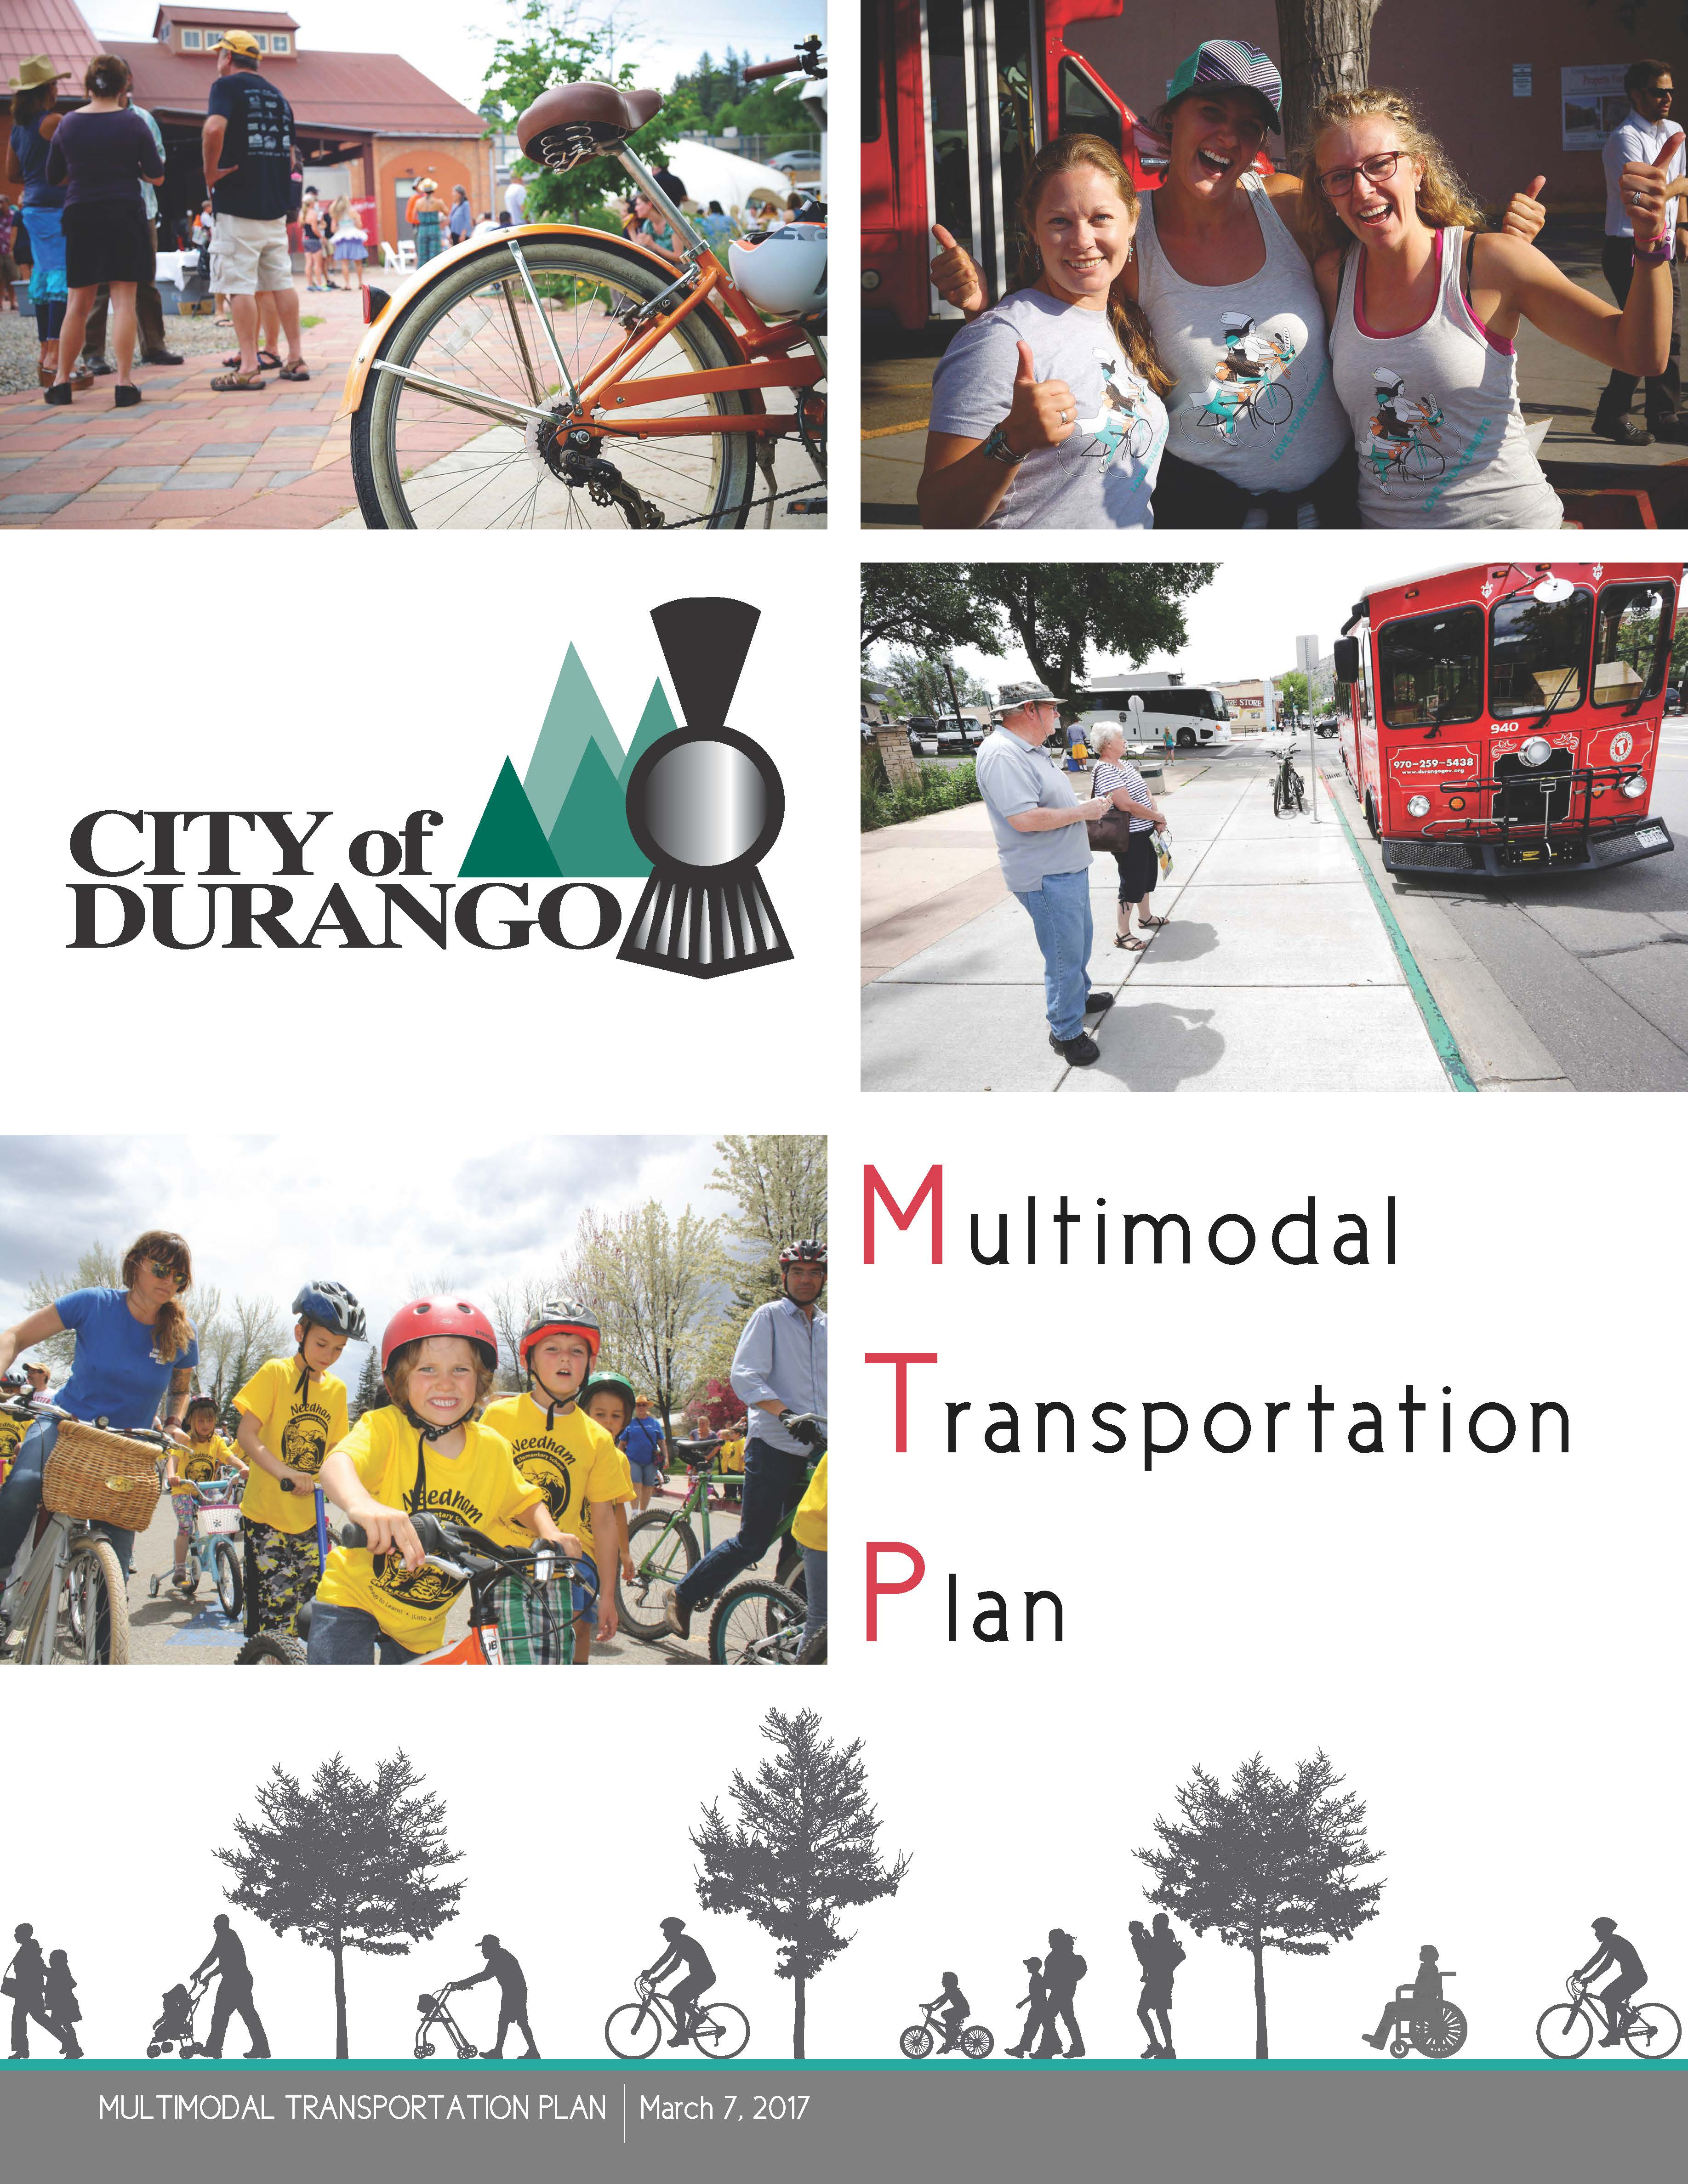 FINAL 2016 Multimodal Transportation Plan Opens in new window